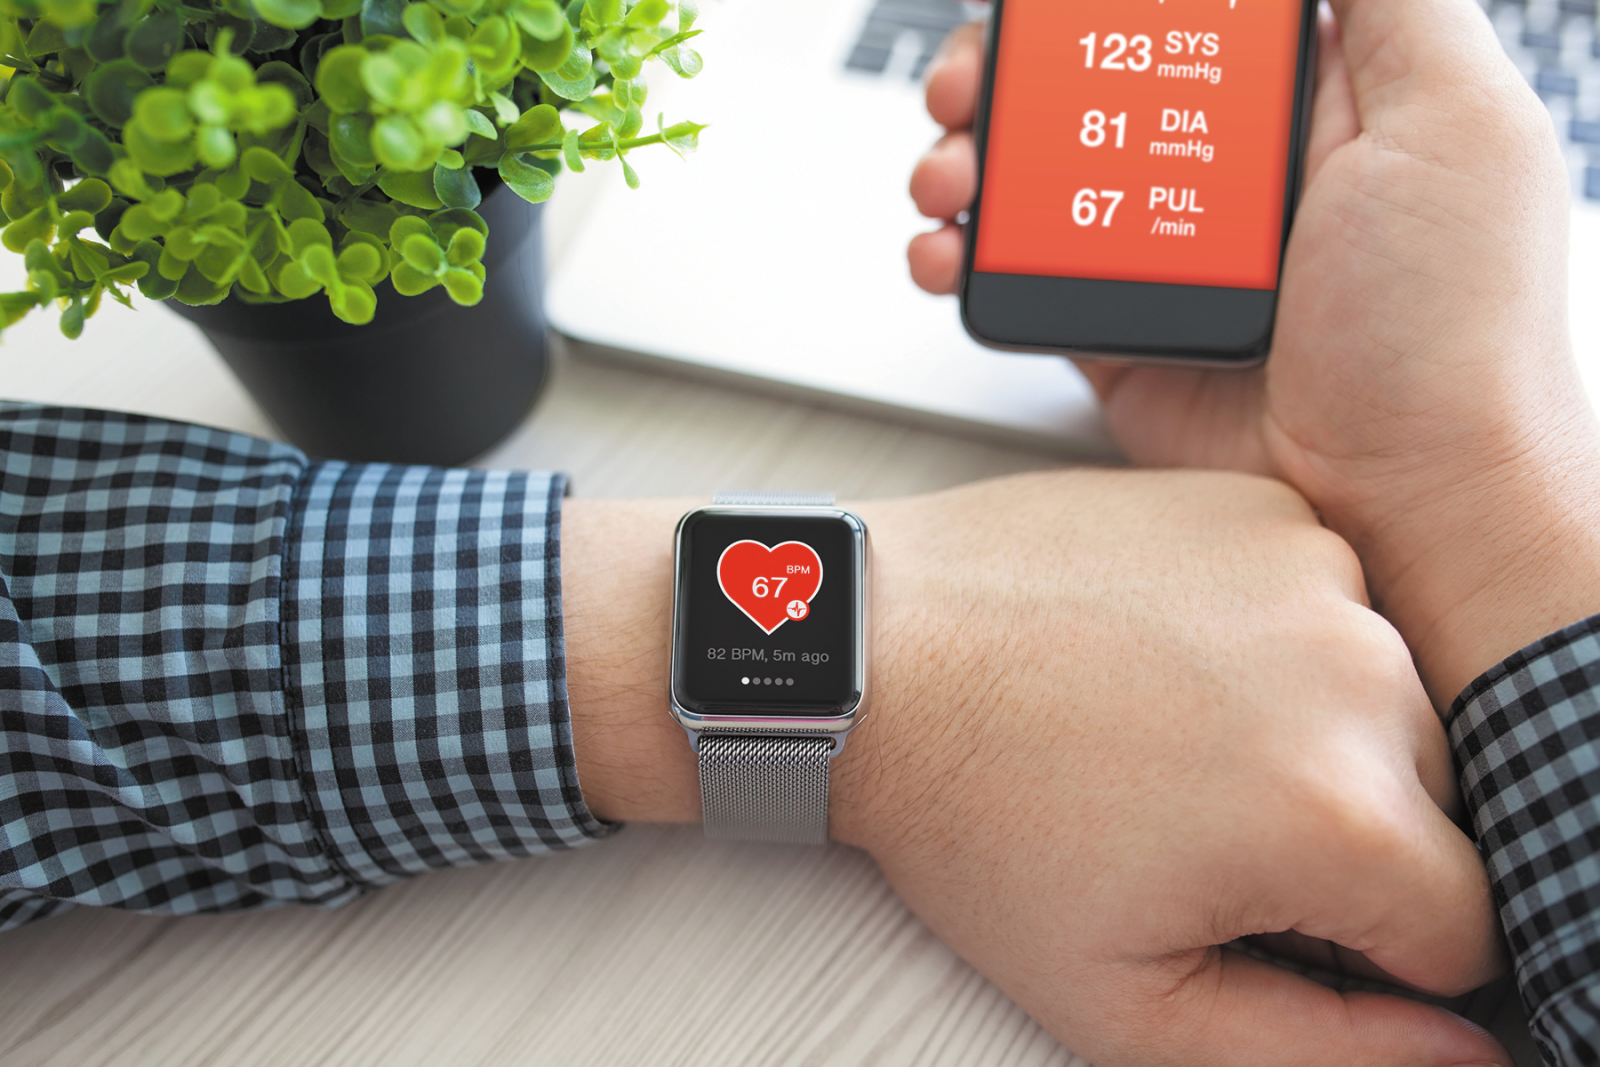 Monitoring Your Heart Rhythm With A Smartphone A Good Call Harvard Health